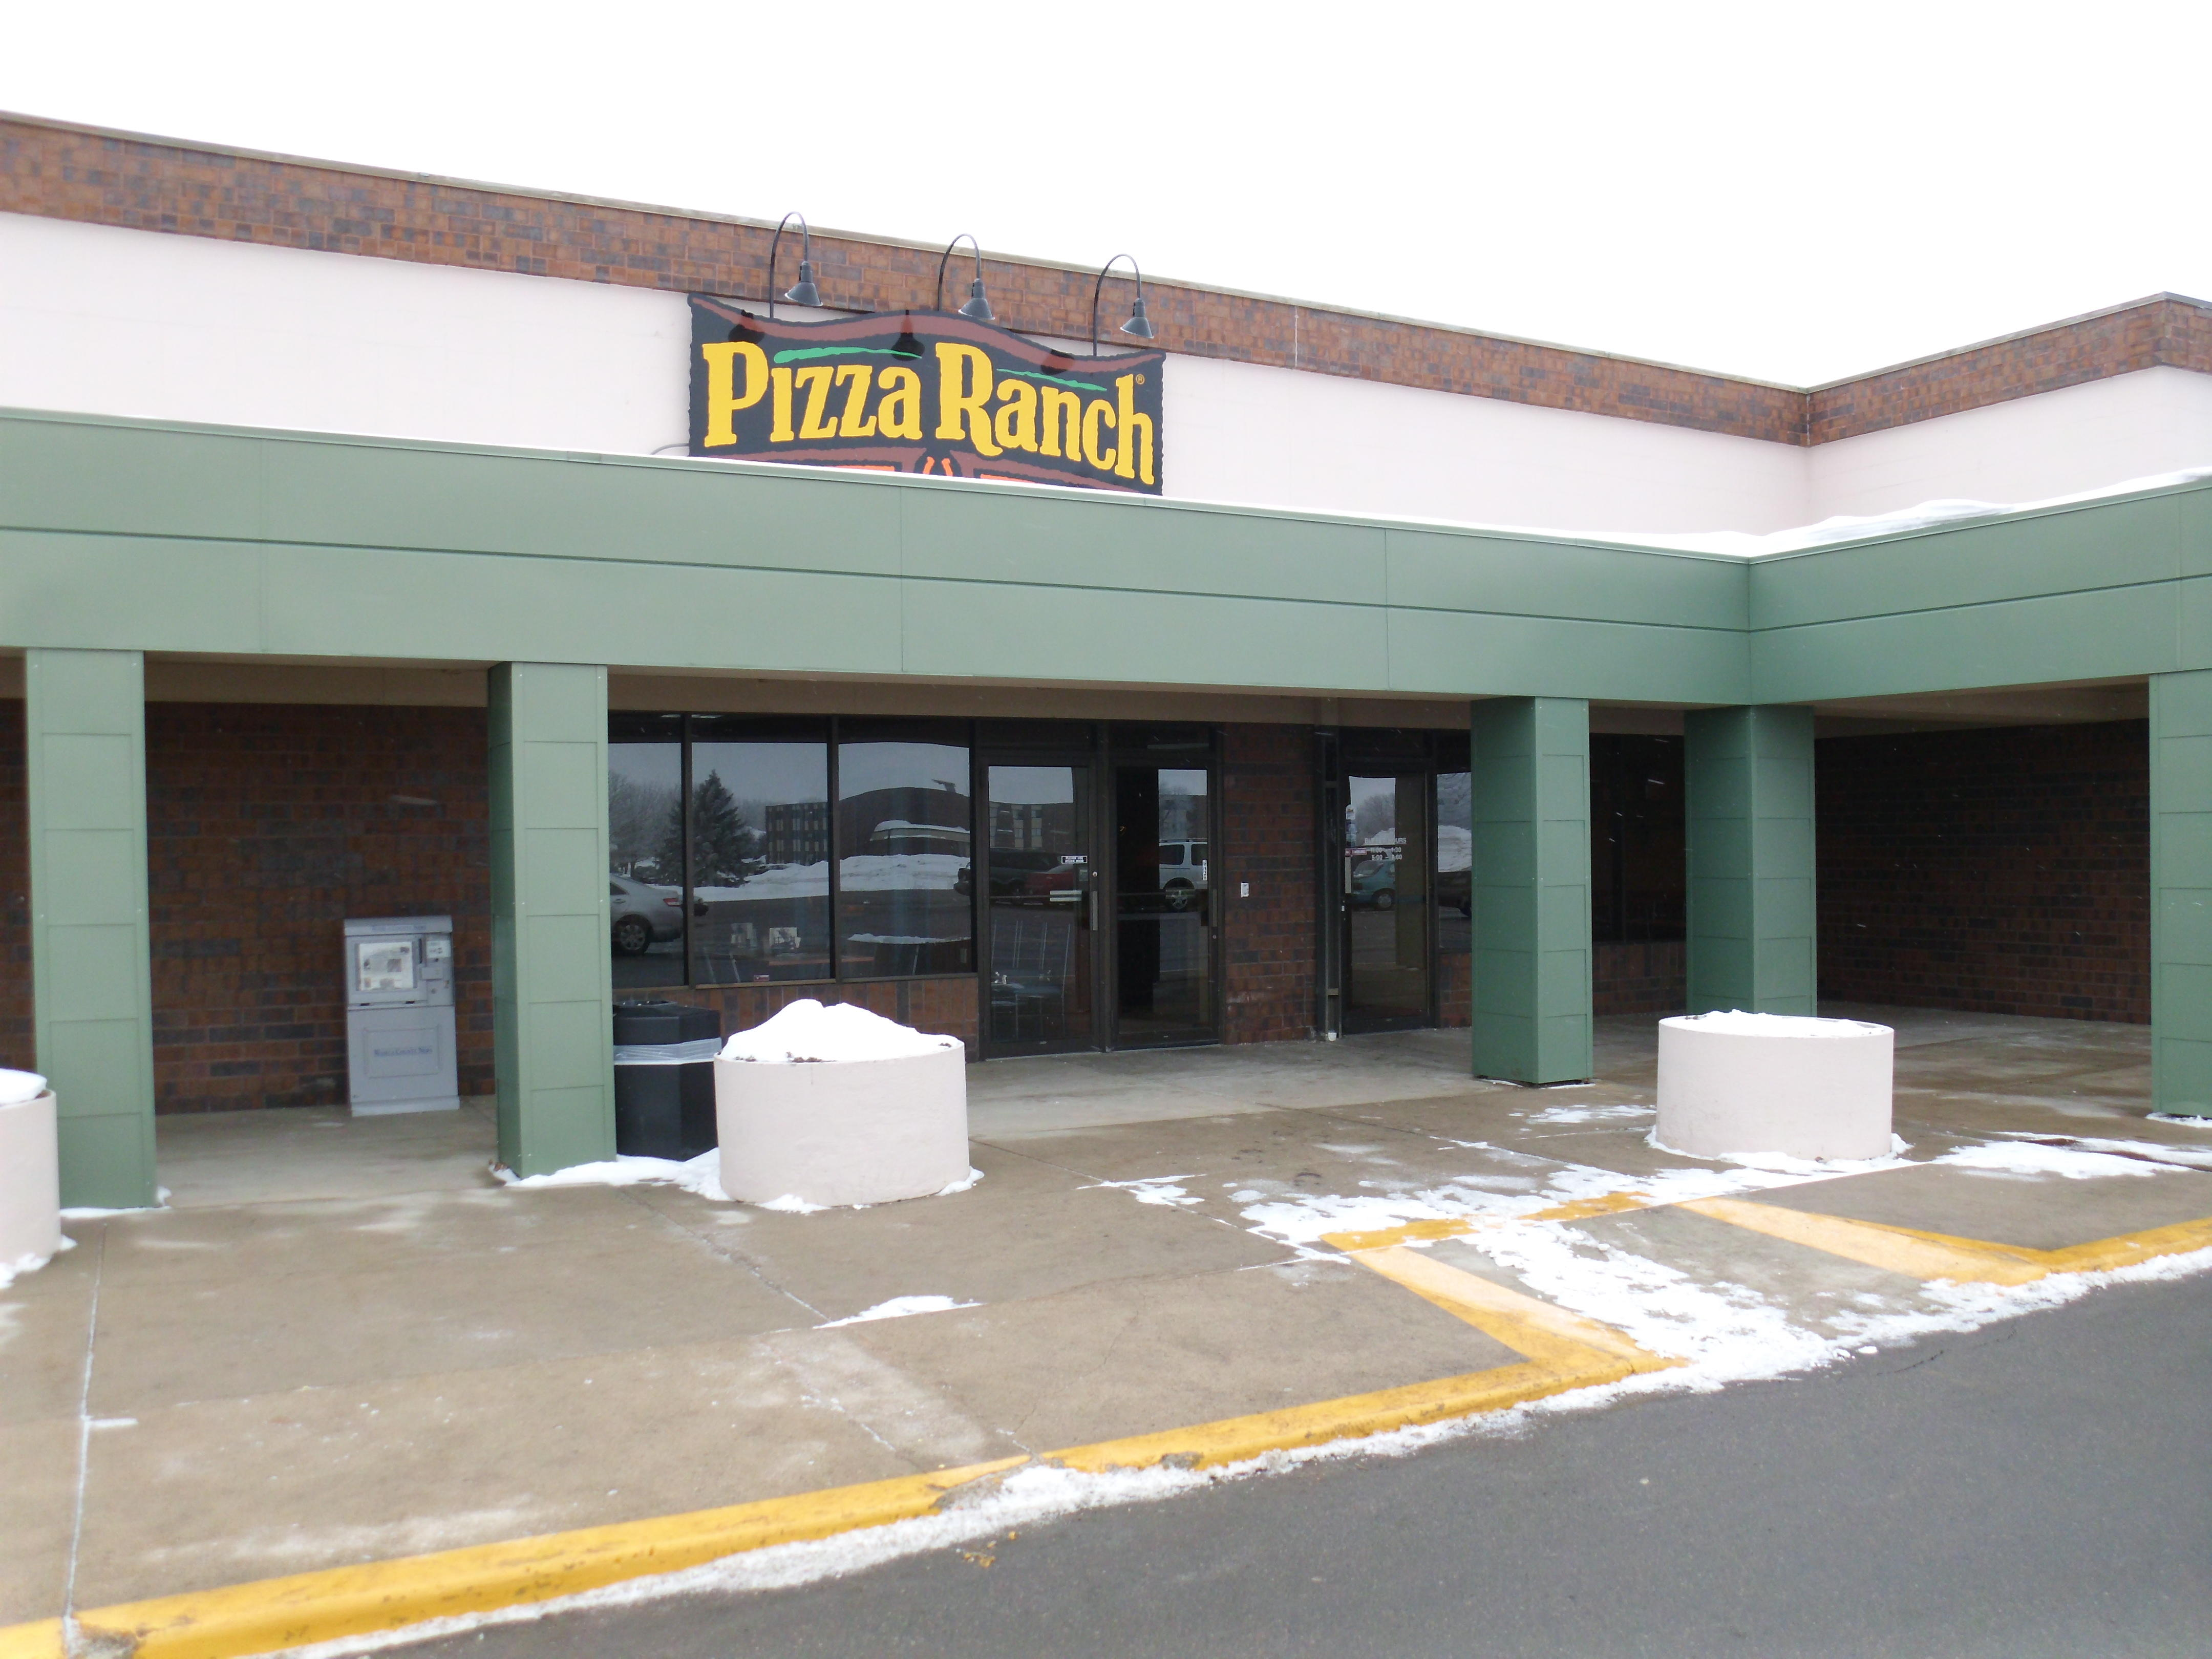 Pizza Ranch, Waseca Minnesota (mn)  Localdatabasem. Assisted Living Gastonia Nc Usc Edd Program. Corpus Christi Luxury Hotels. I T T Engineered Valves Teleprompter Ipad App. Corporate Travel Software Adams State College. Philippine Airlines Credit Card. Online Doctor Of Public Health. Who To Make Your Own Website. How To Compare Insurance Dentists Glendale Az